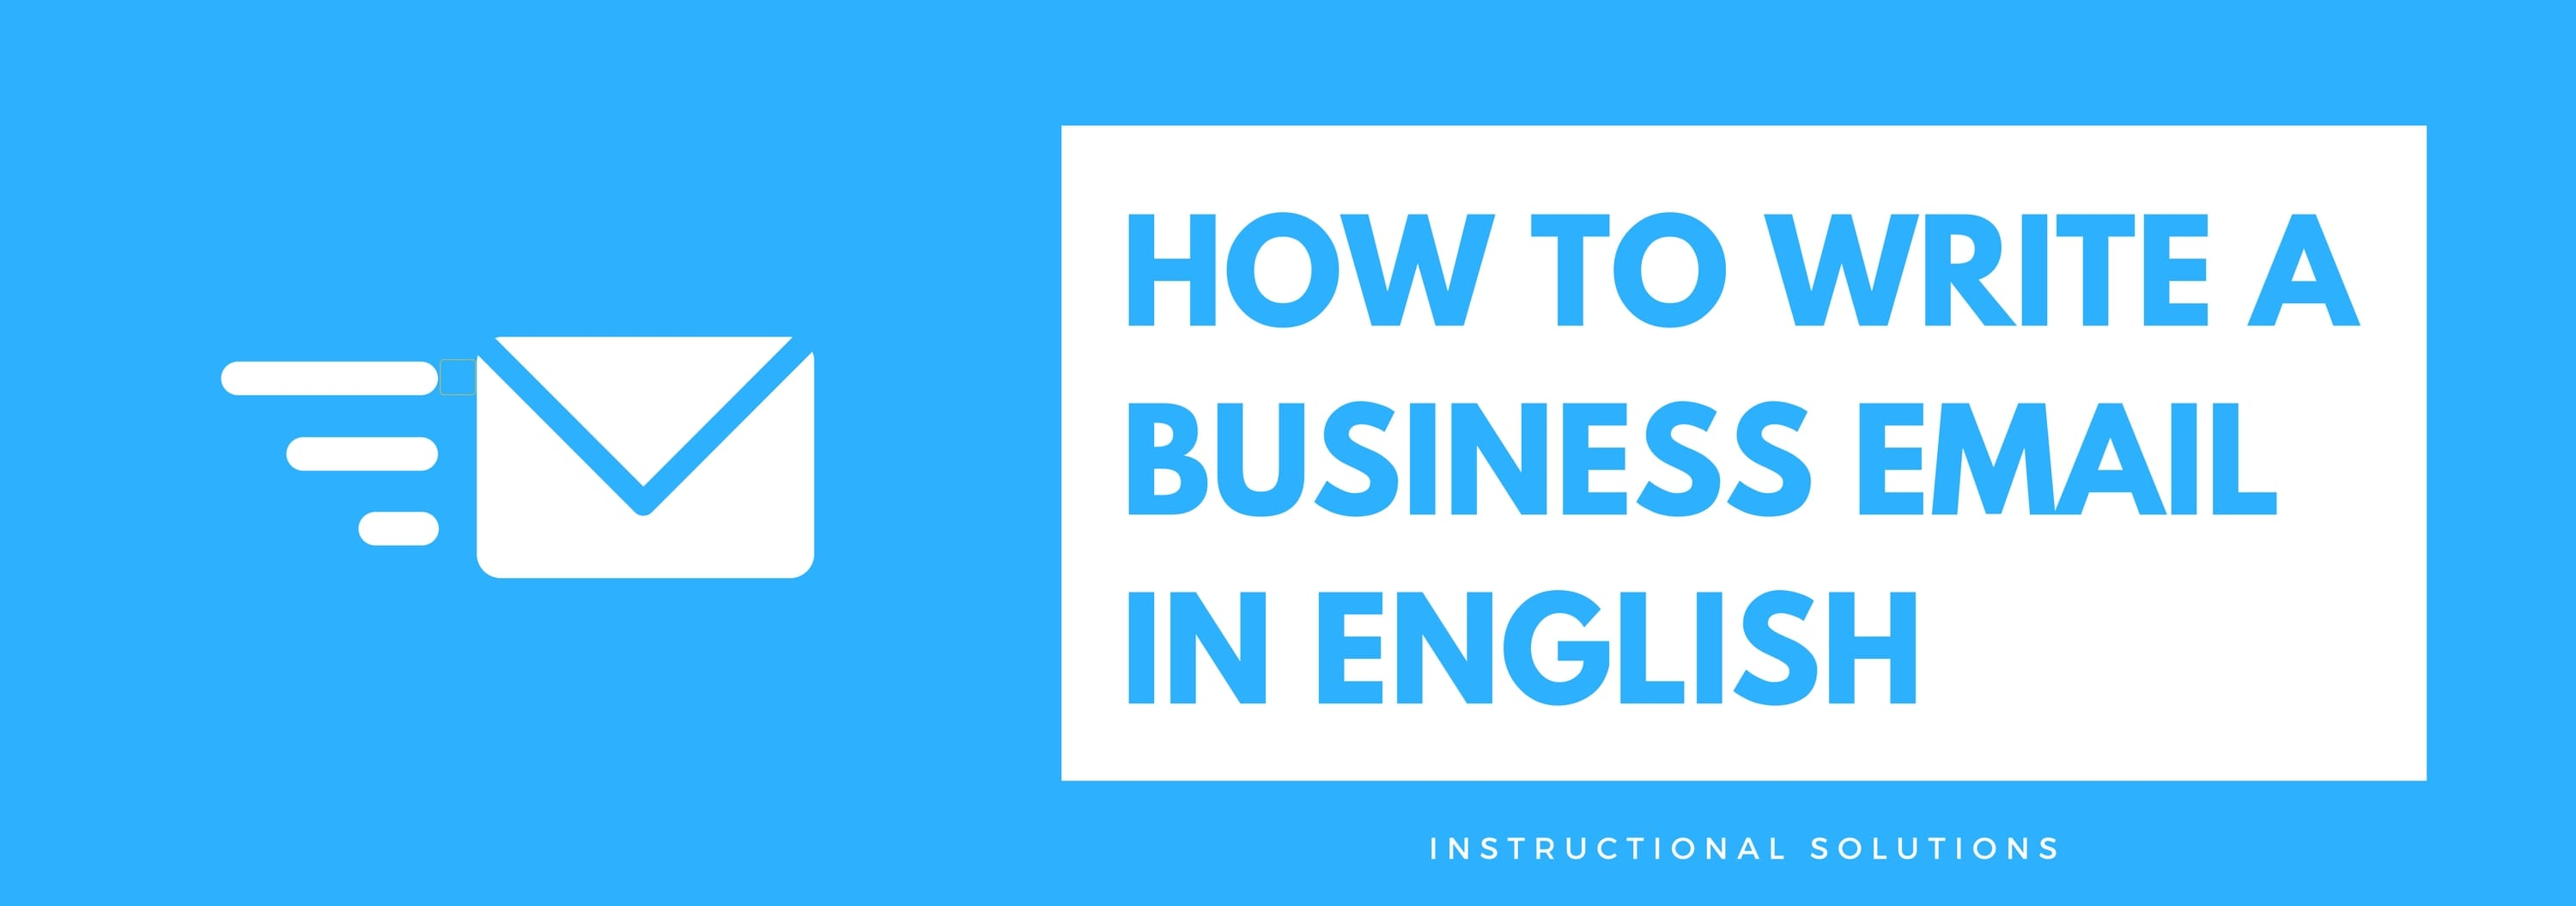 How to write an email in english business